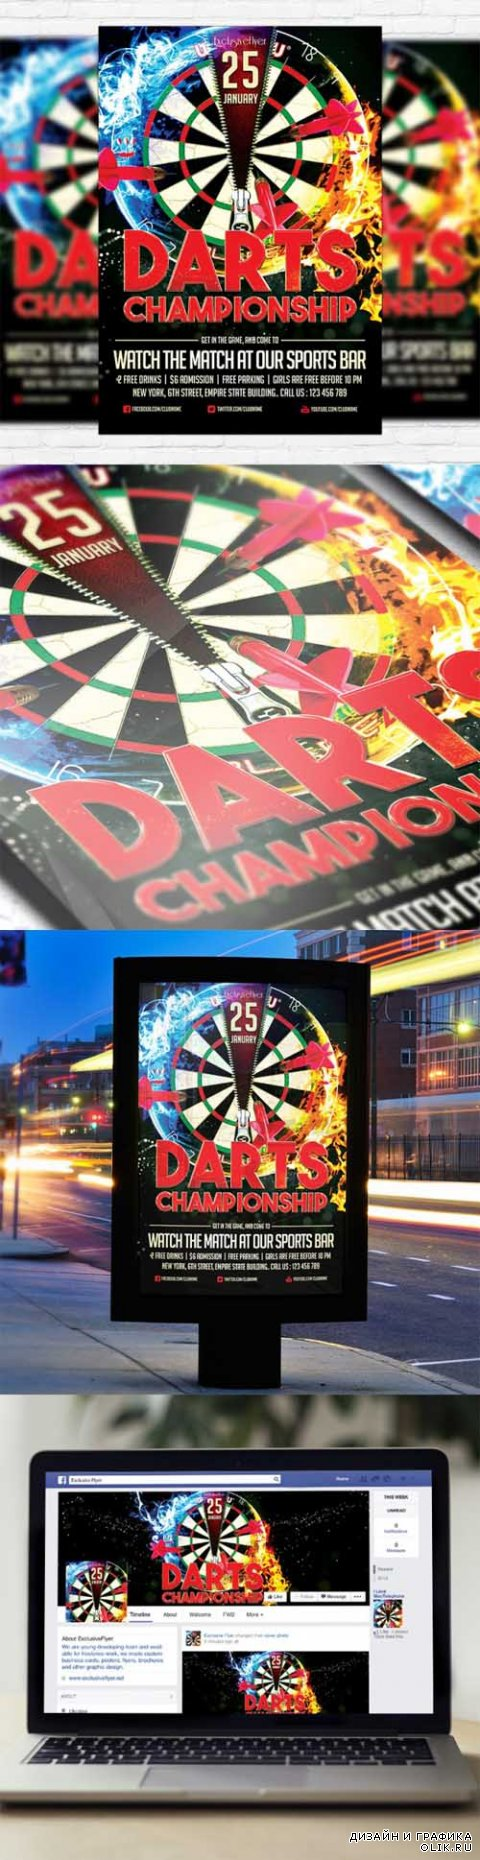 Flyer Template - Darts Championship + Facebook Cover